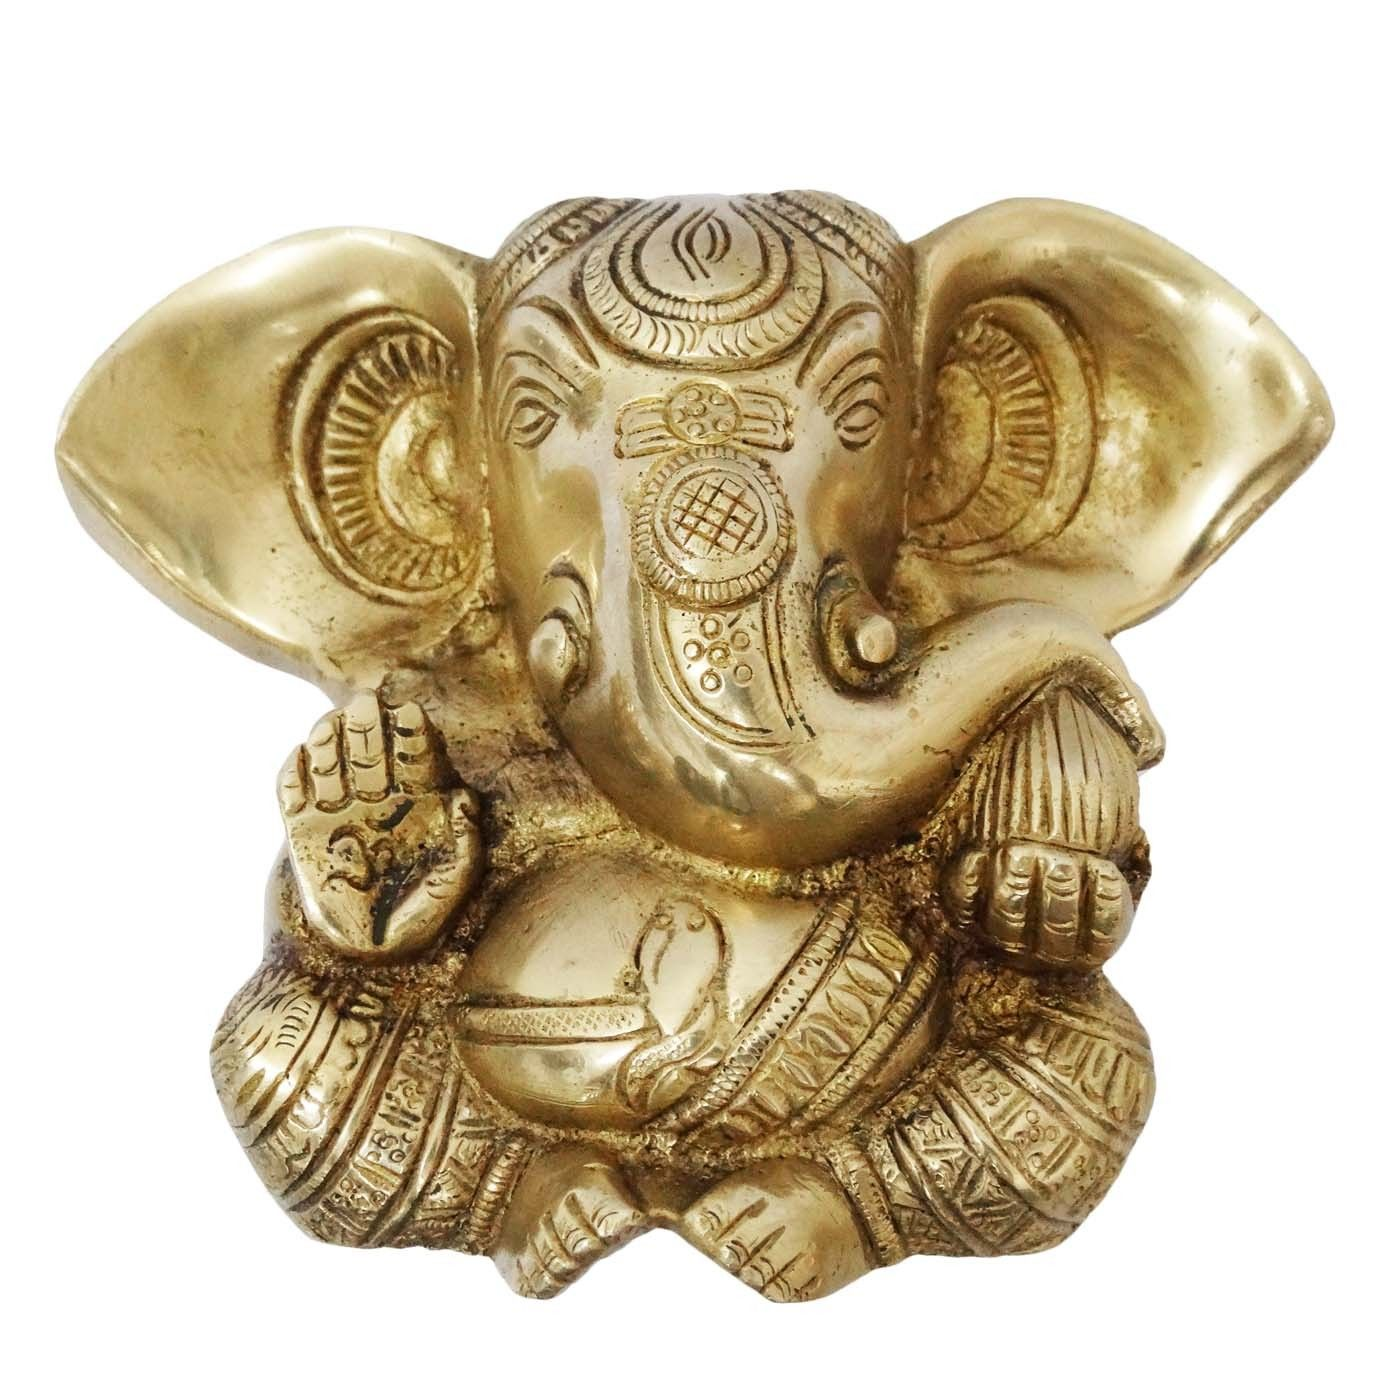 Brass metal statue / sculpture of Lord Ganesha in golden color with ...